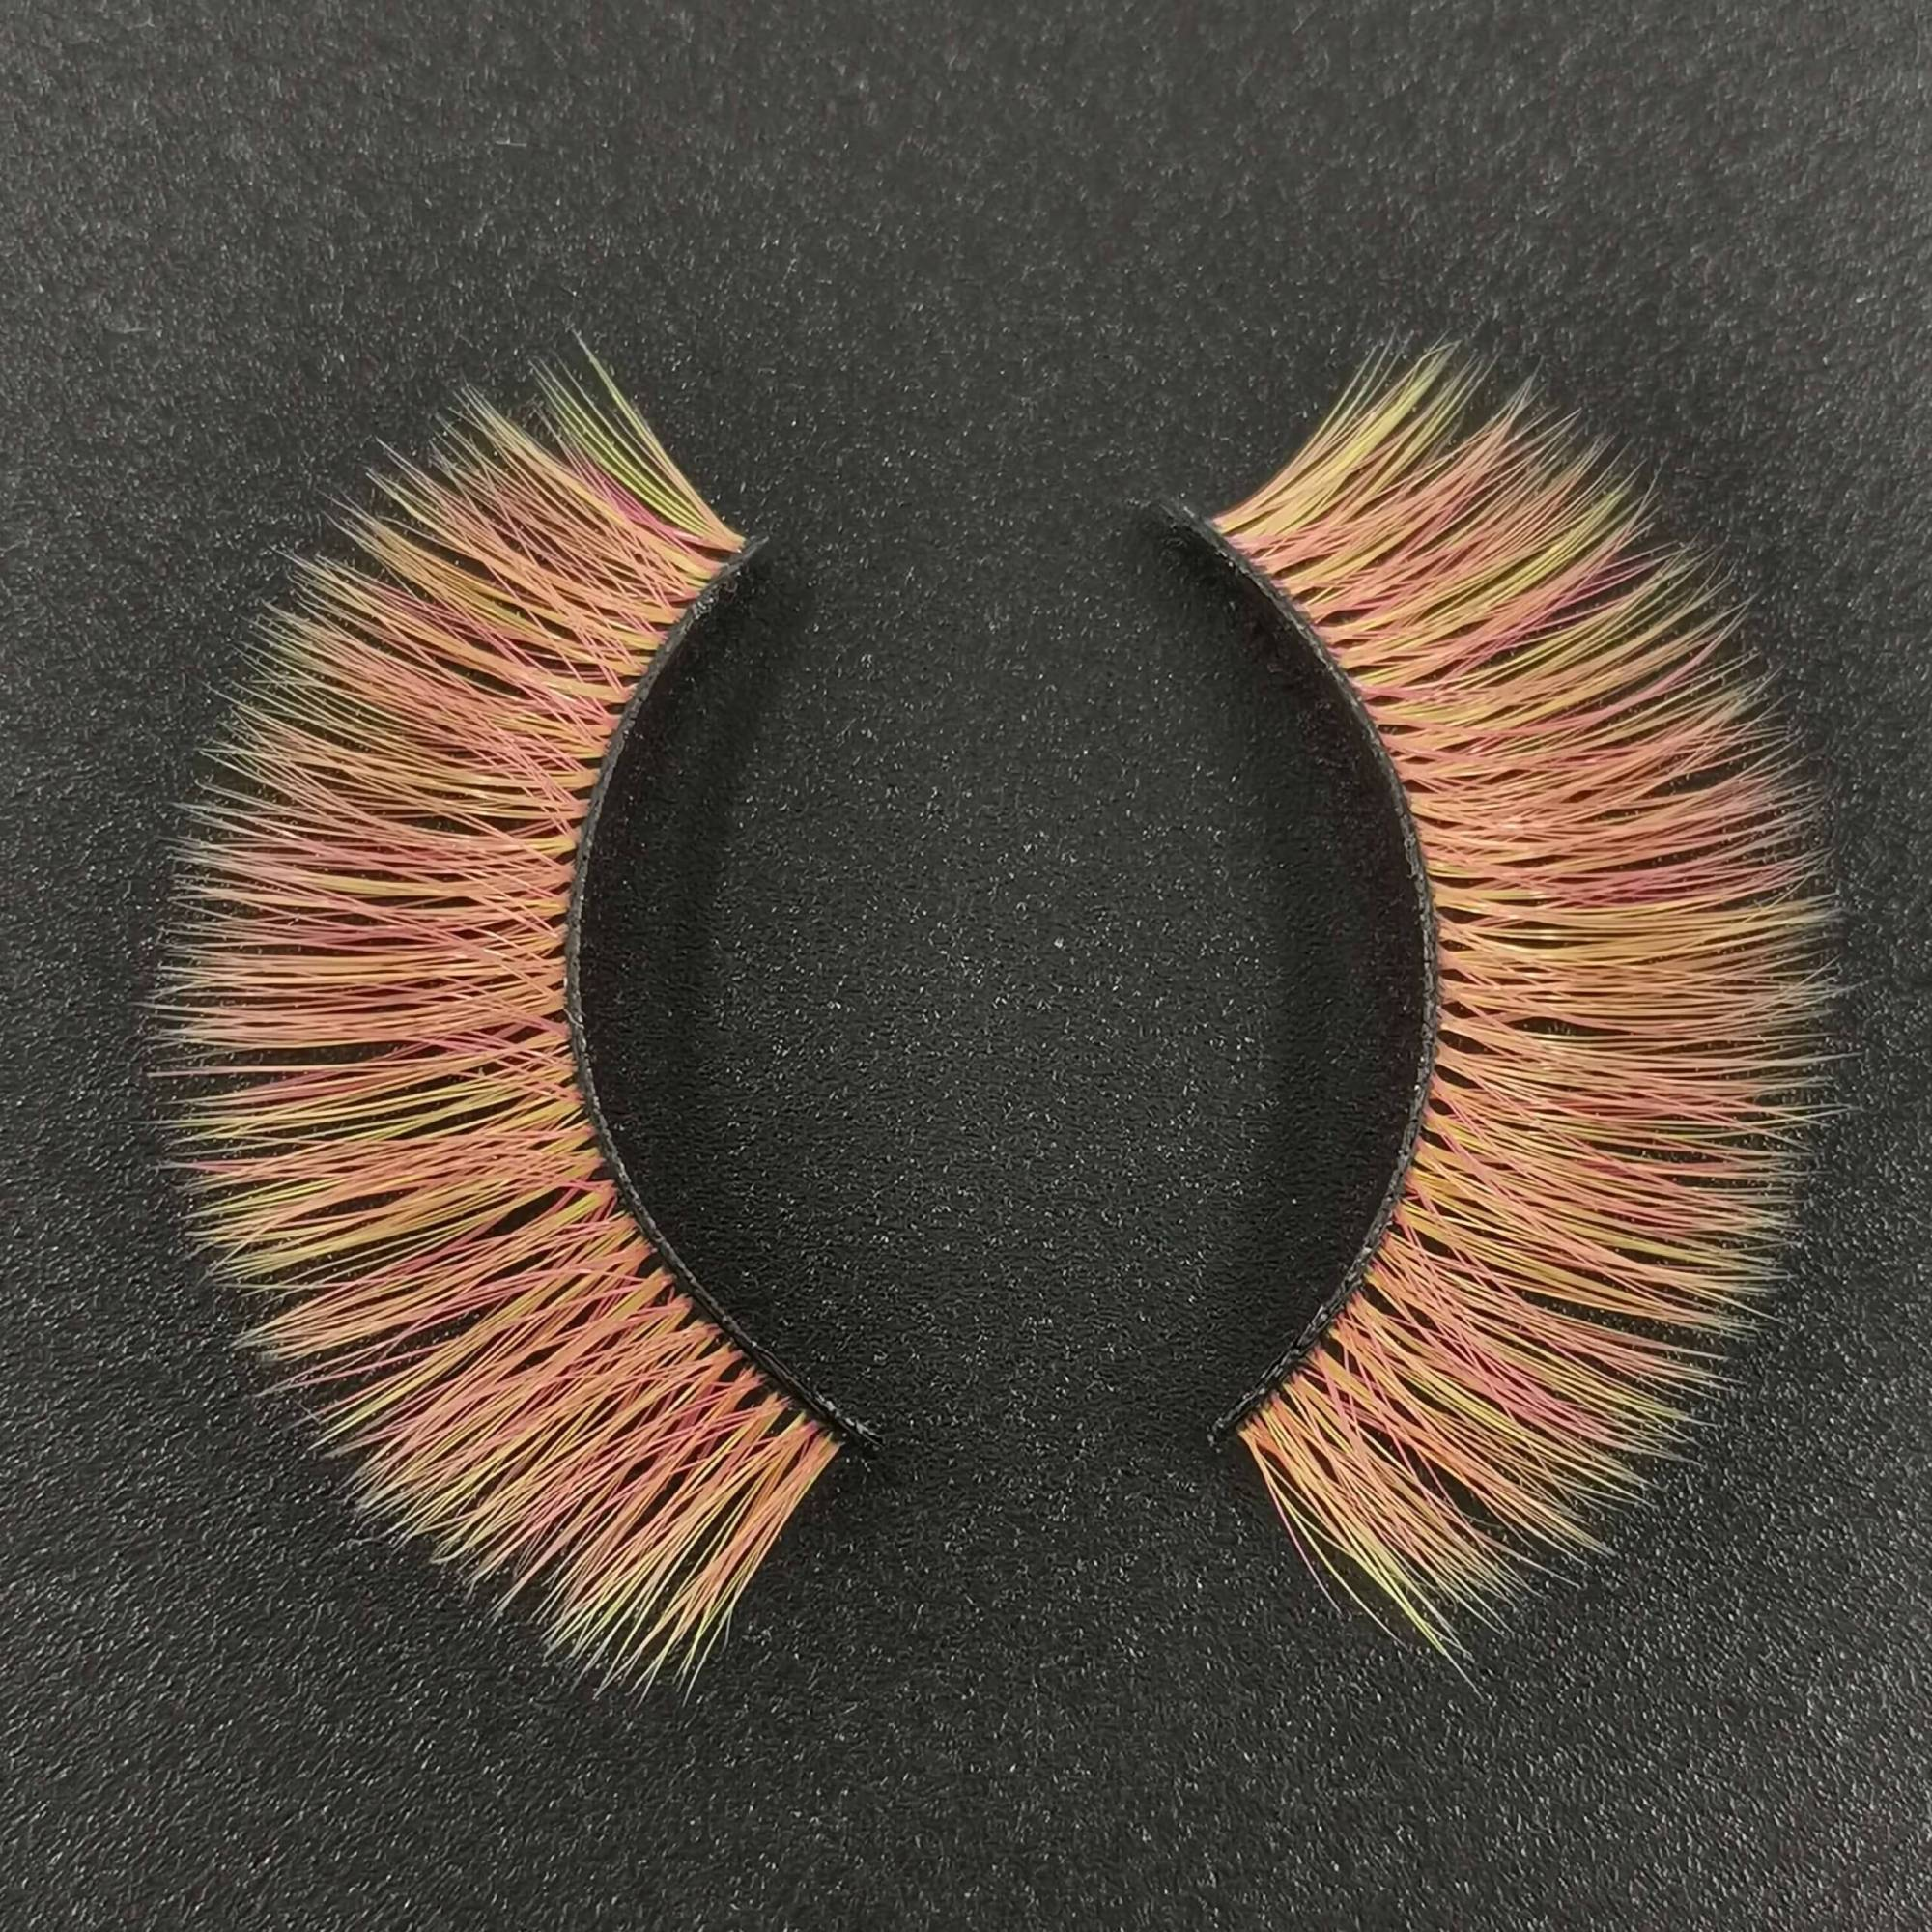 A pair of colored eyelashes for your eye shape and its color is orange with yellow tips. Trust me, ProluxuryLashes brand is the best eyelash supplier